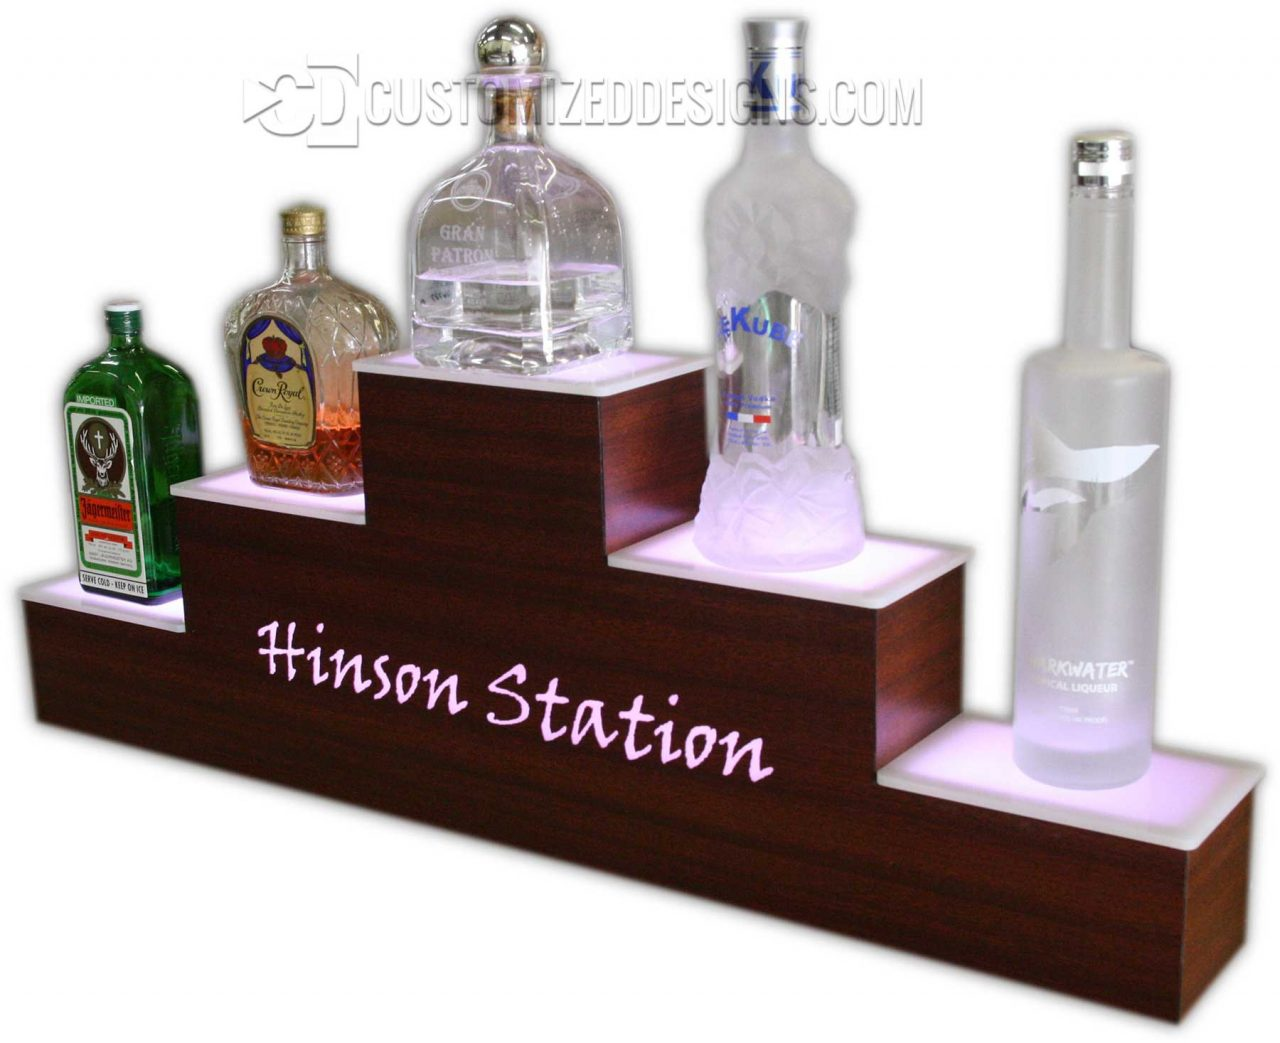 Hinson Station Pyramid Style Bottle Display